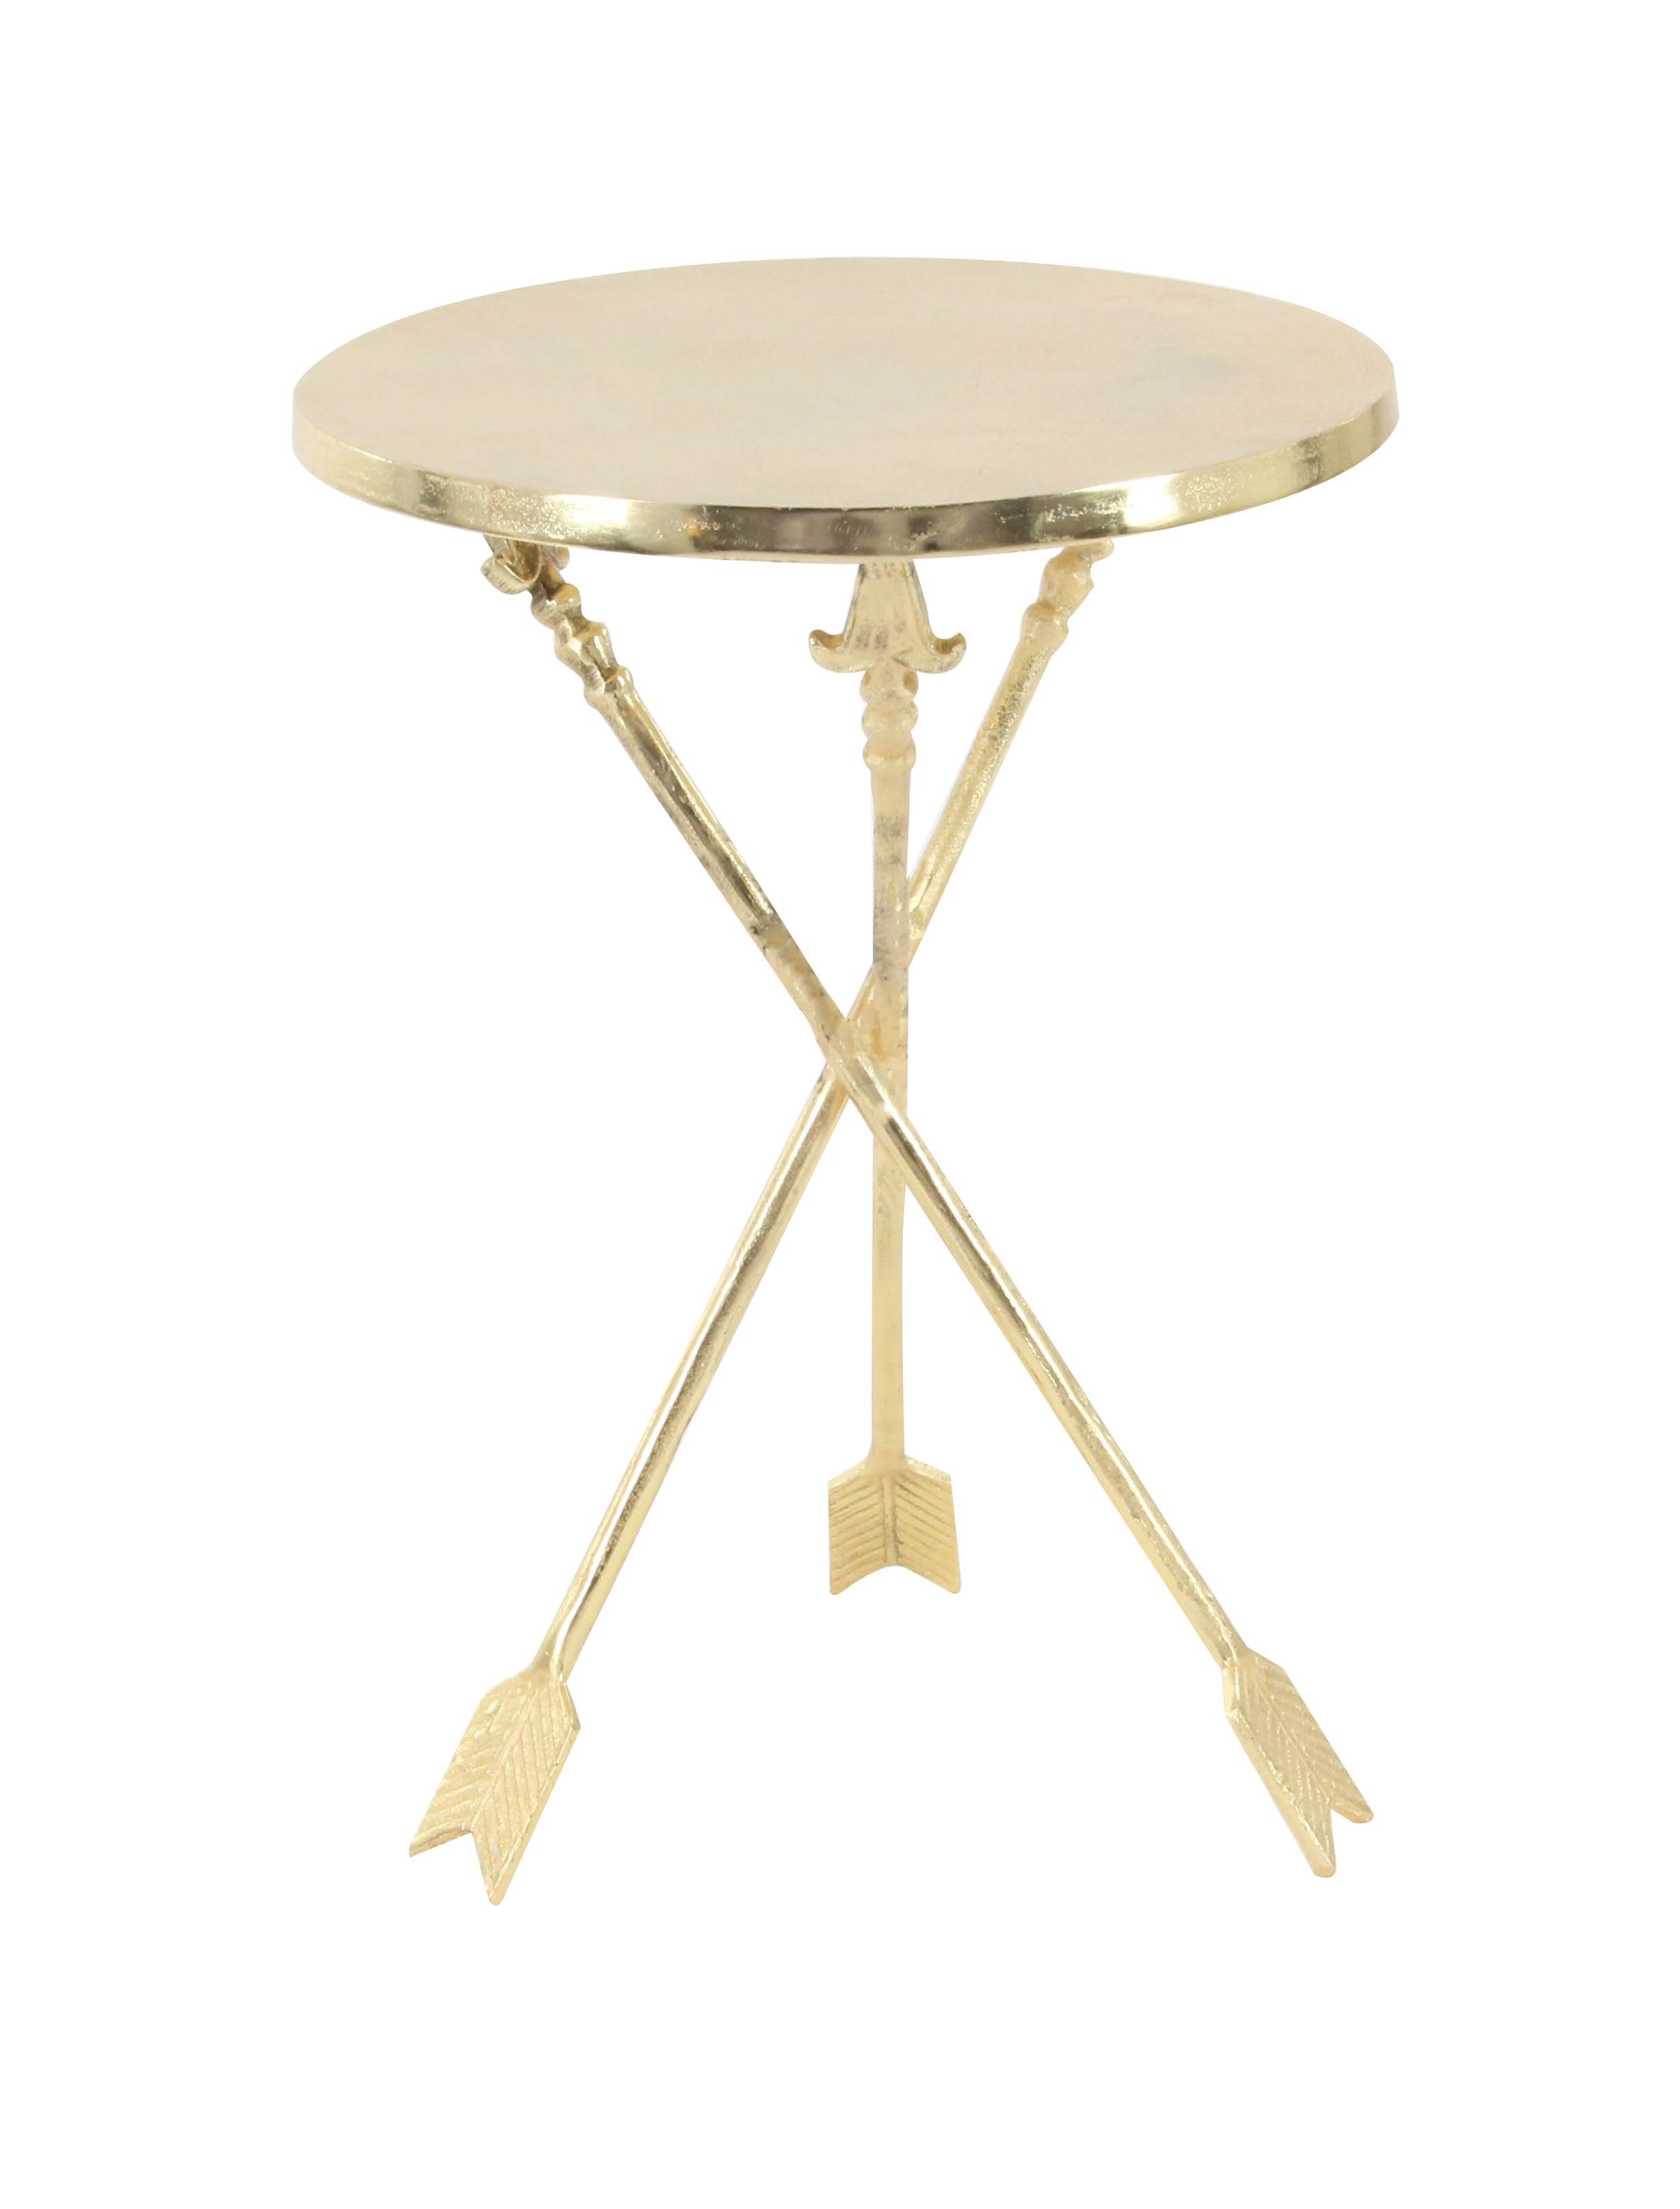 Decmode Contemporary 22 X 16 Inch Round Gold Aluminum Arrow-Legged Accent Table, Gold by DecMode